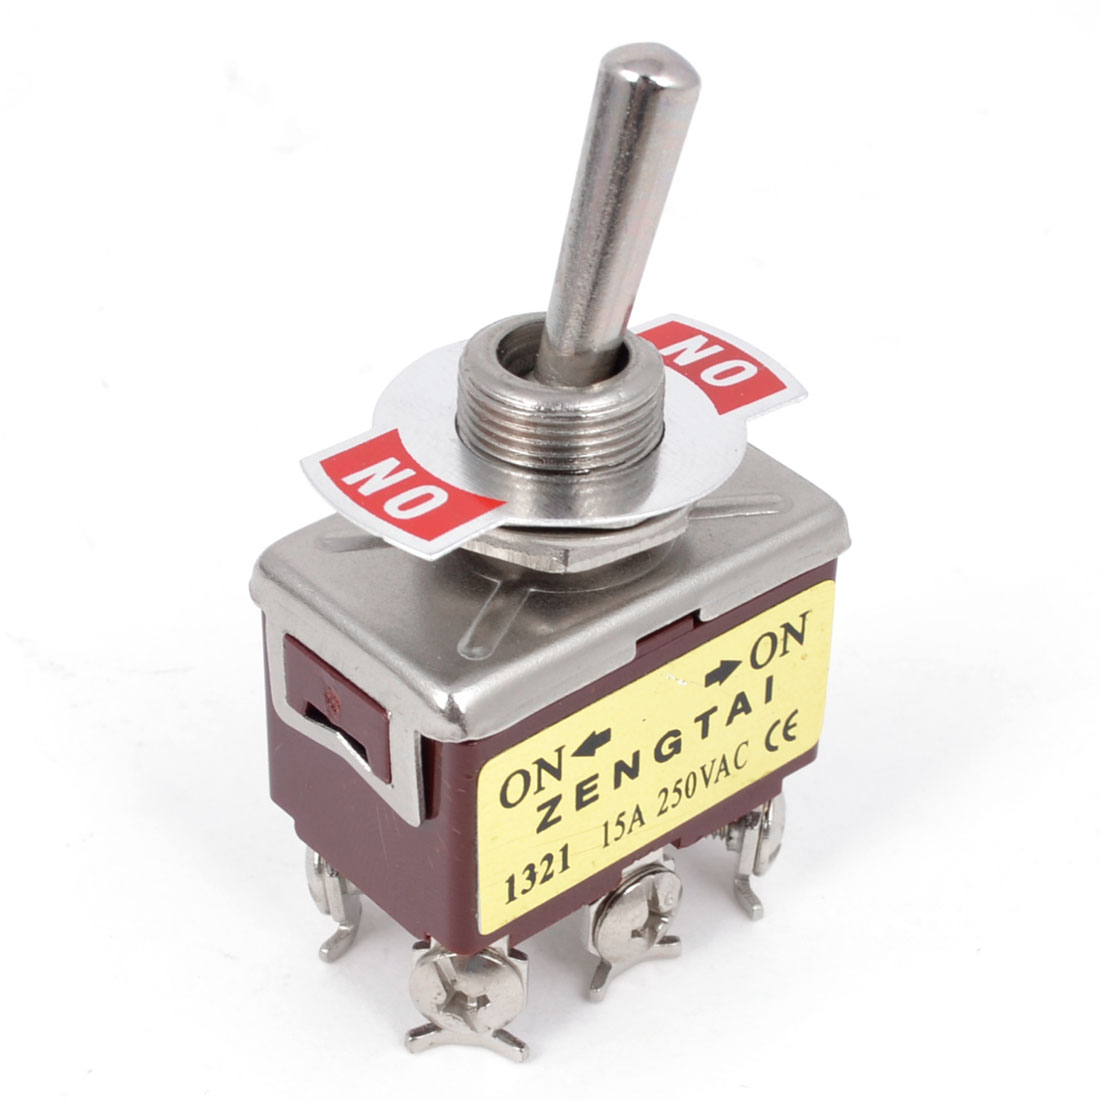 AC 250V 15A DPDT ON/ON 6 Screw Terminals Latching Toggle Switch